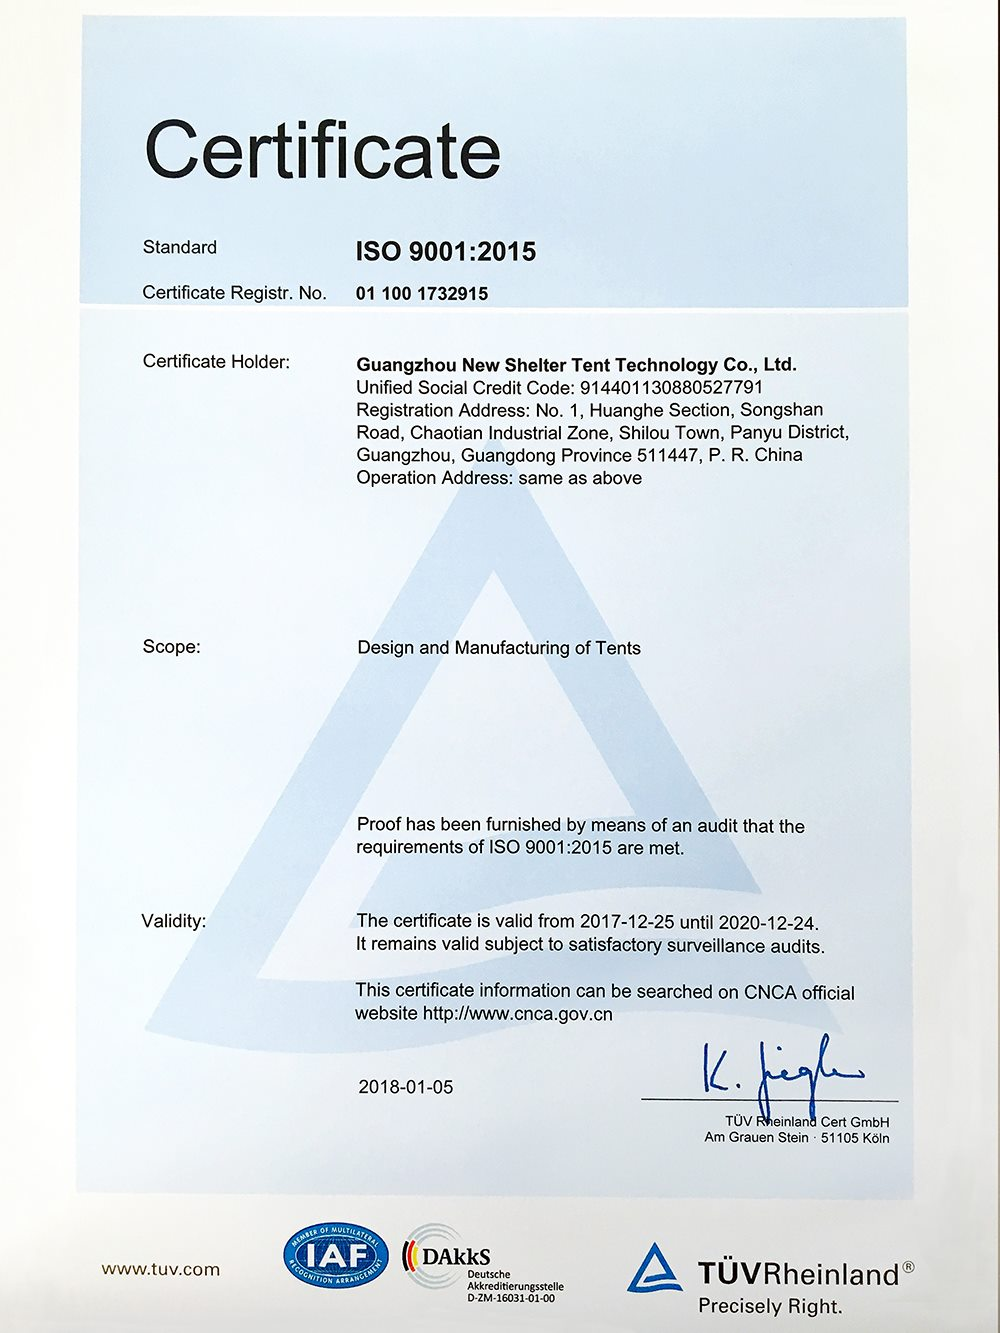 1000 ISO 9001 2015 certification